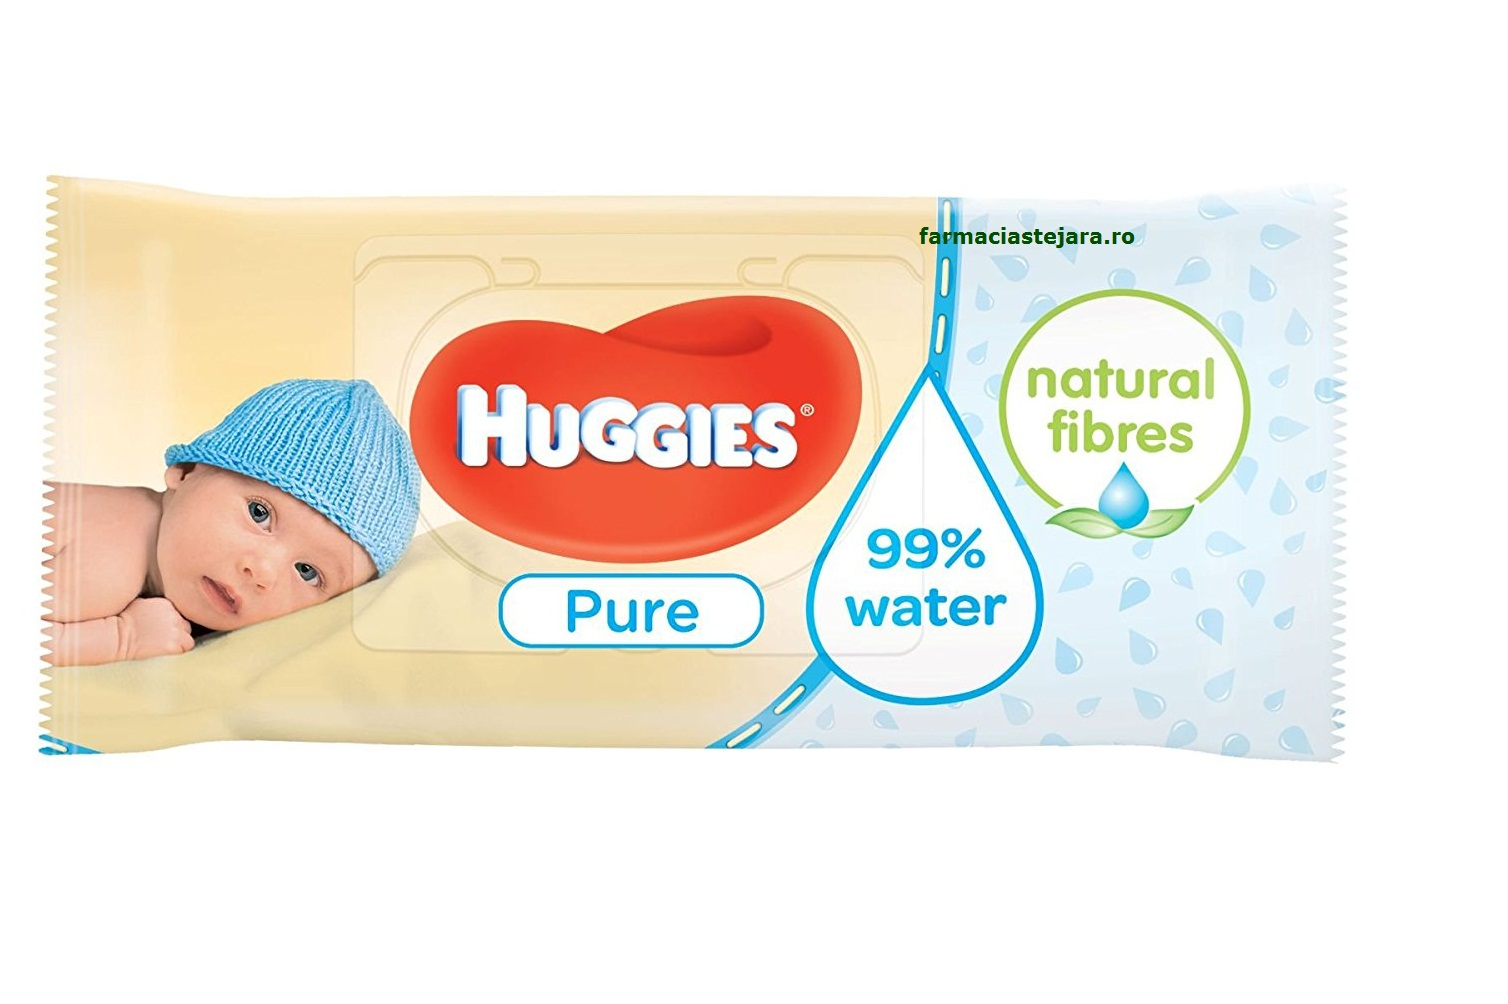 Huggies Pure Servetele Umede